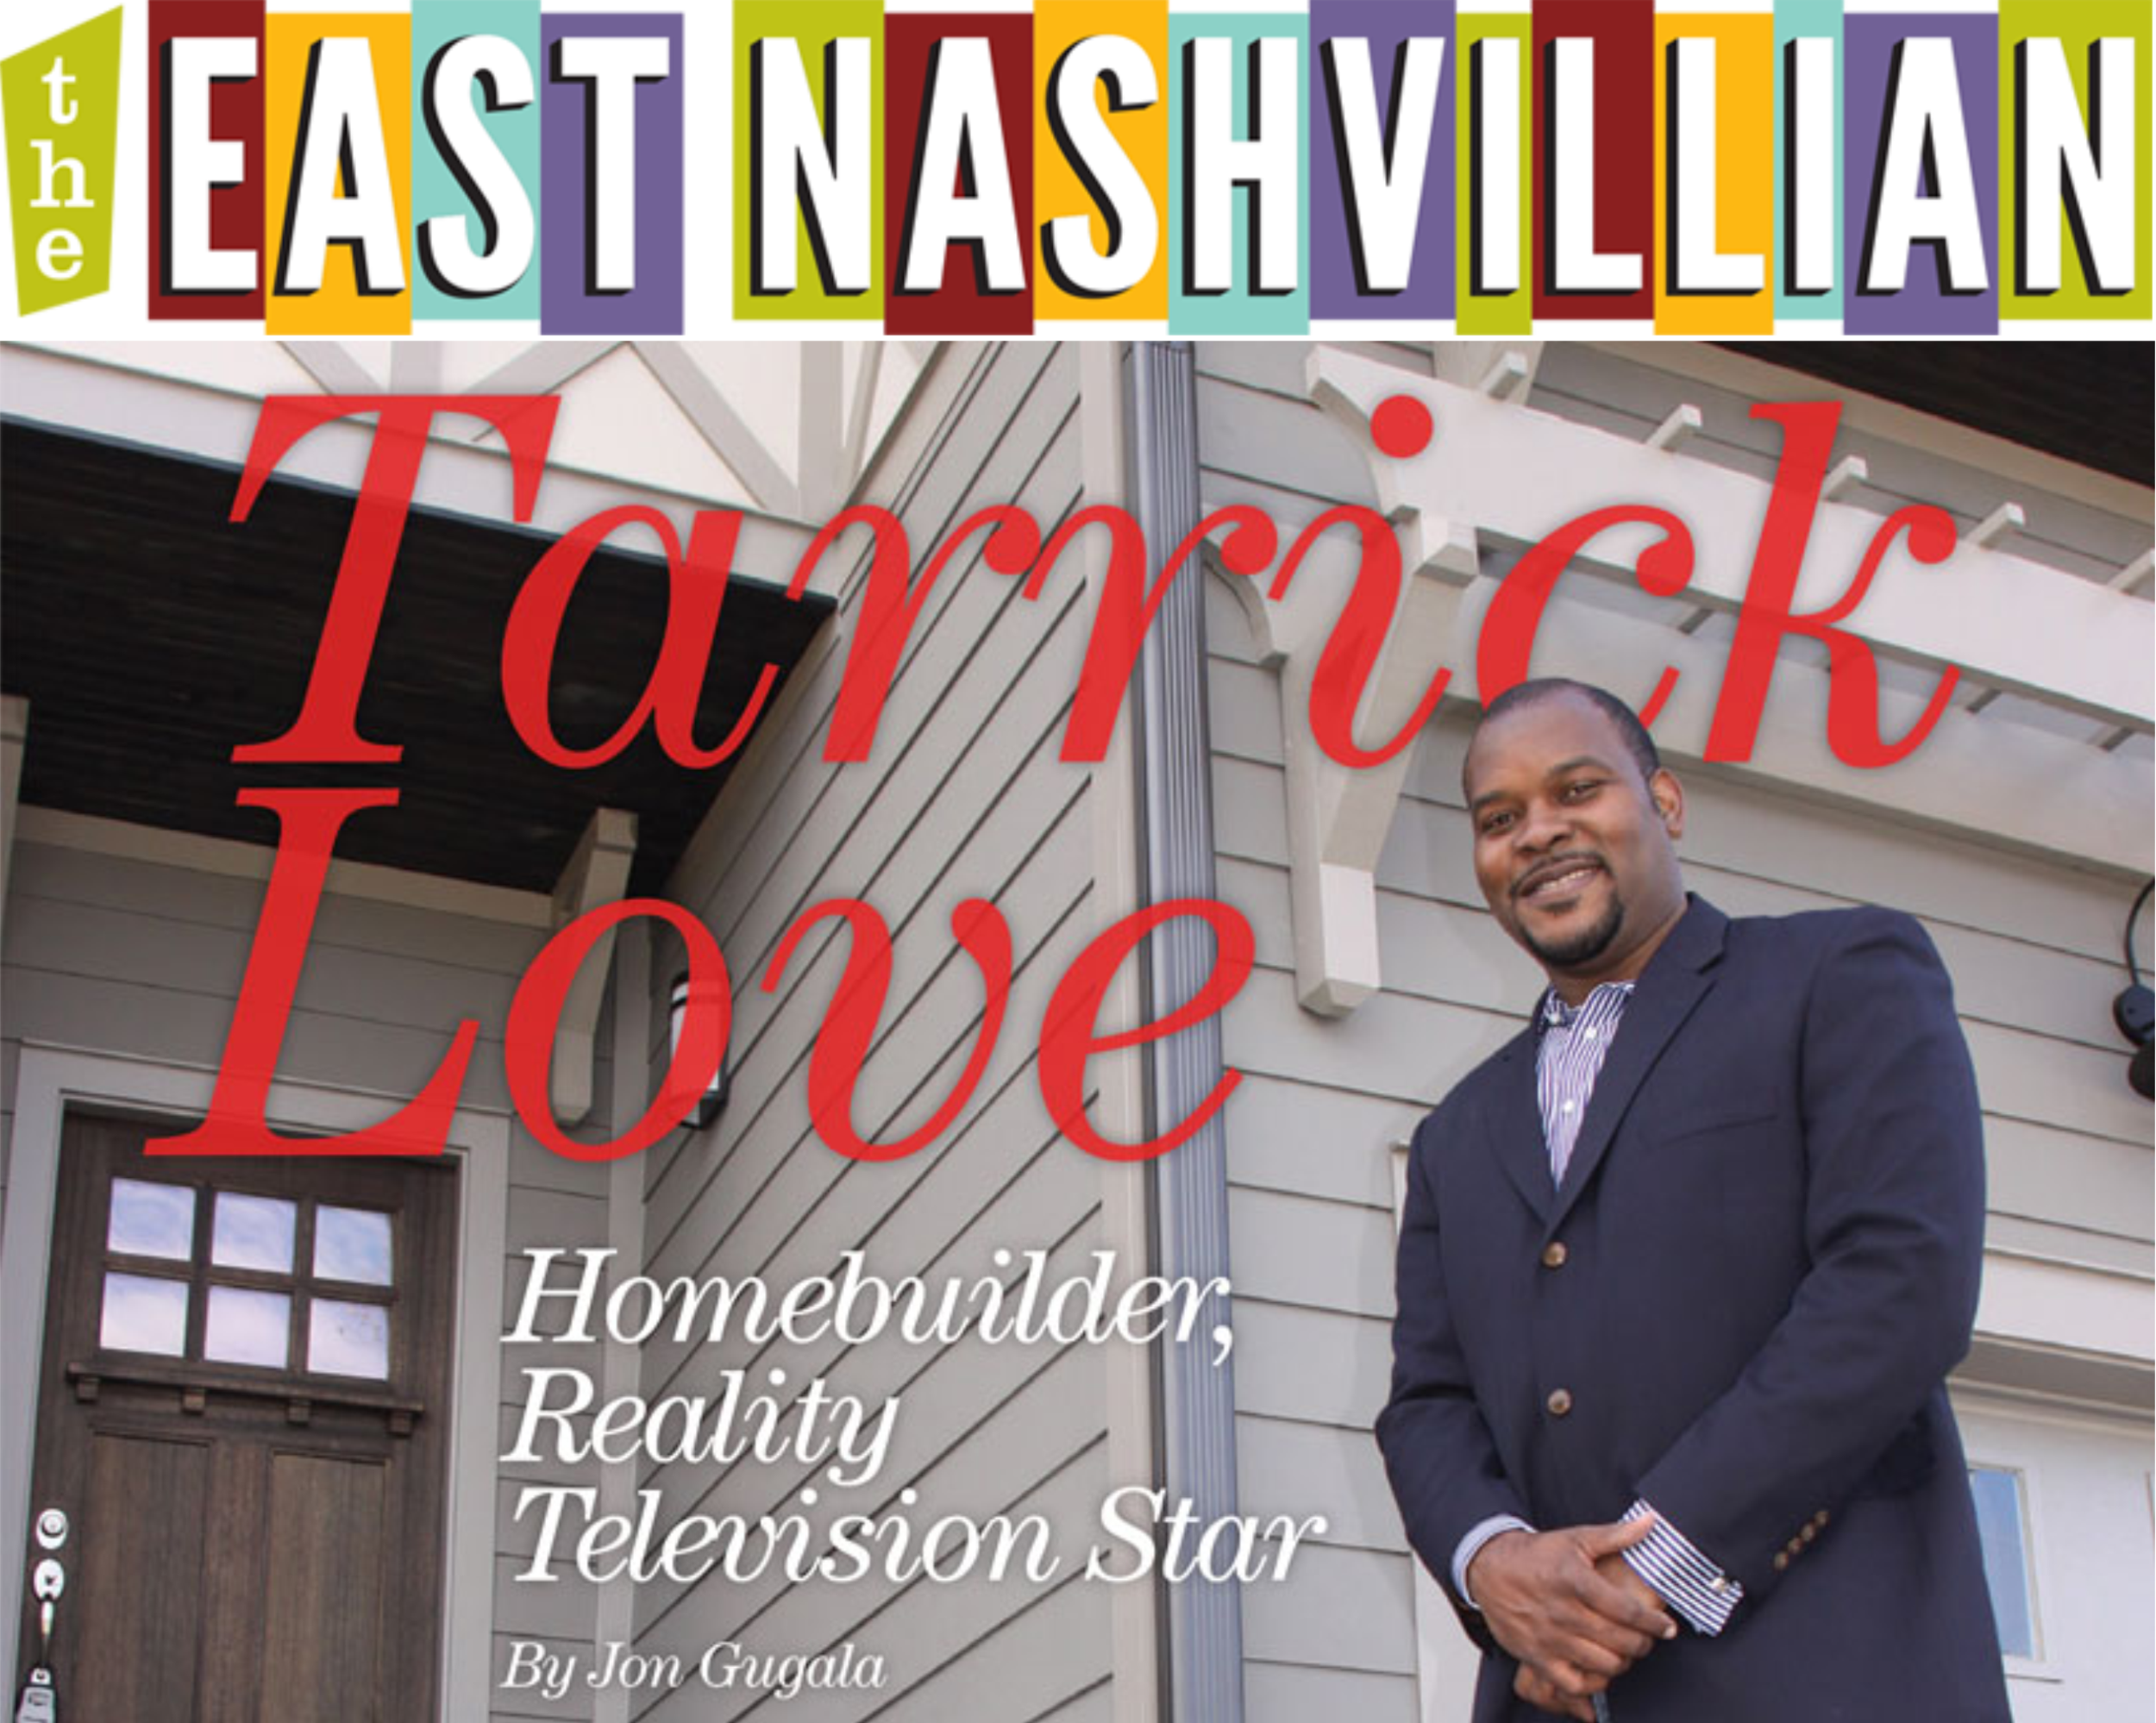 HL TARRICK LOVE | Home builder, reality television star